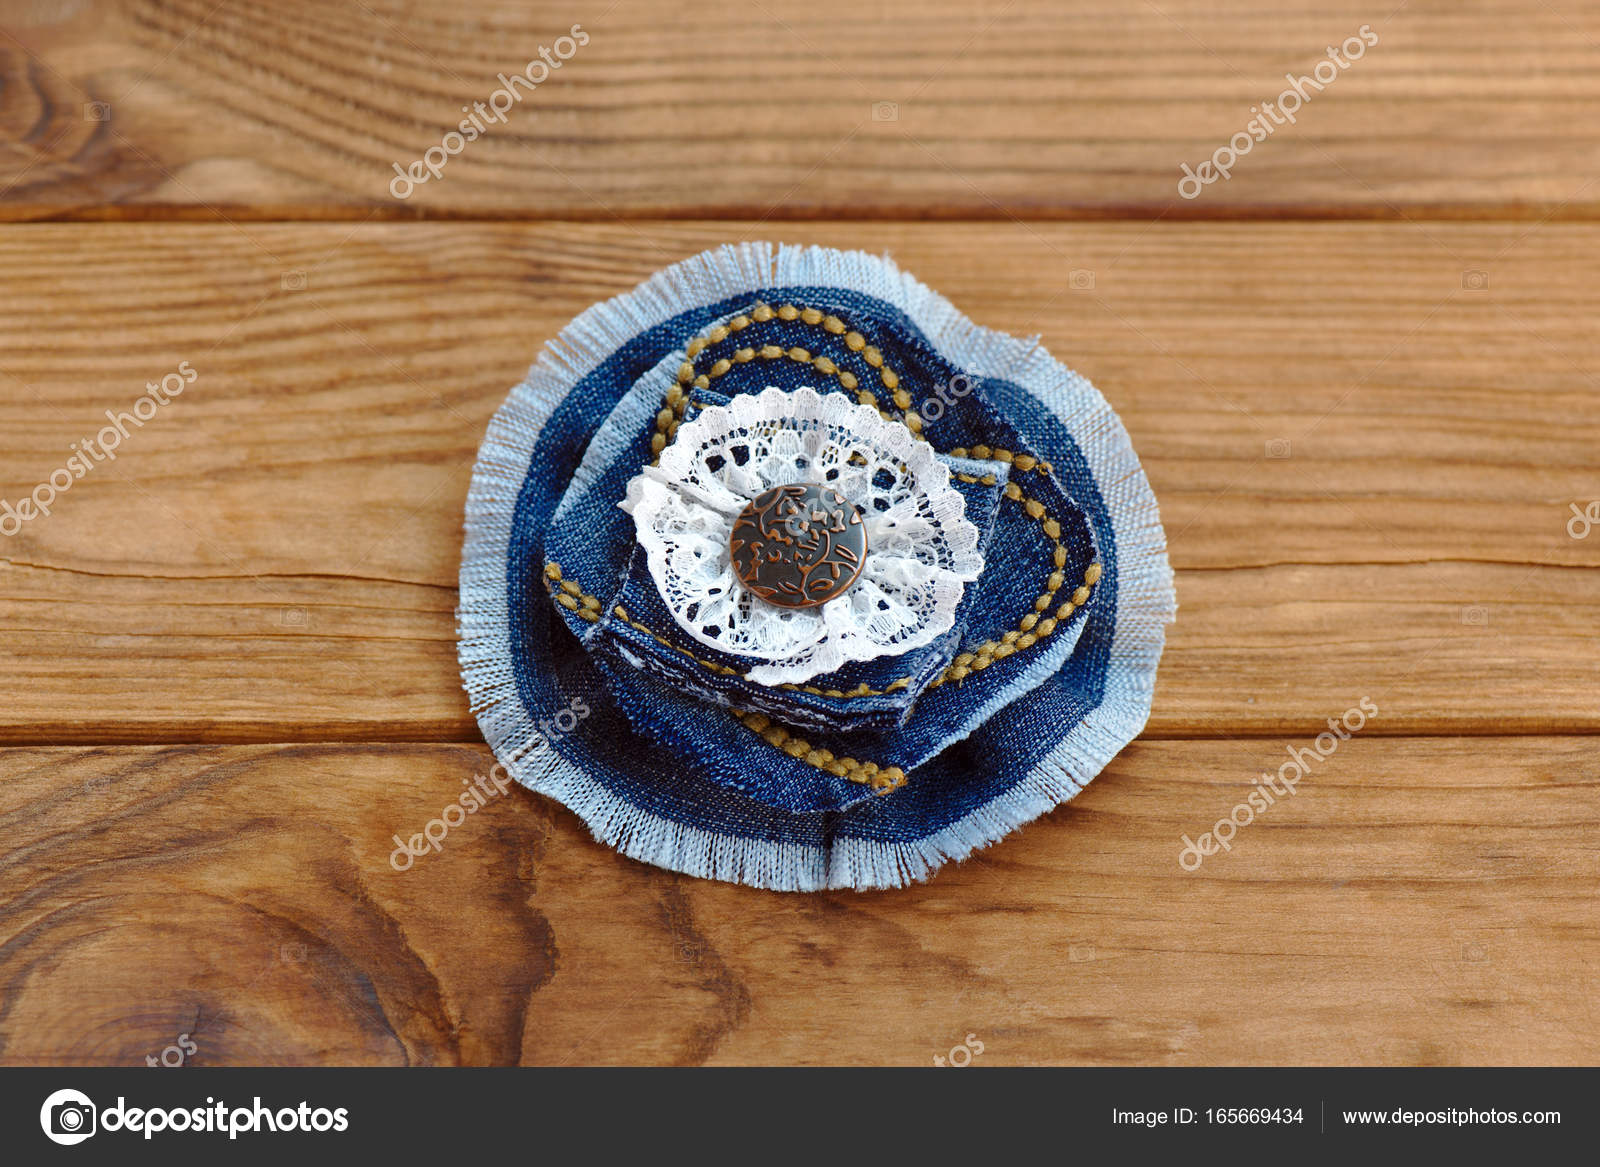 How To Recycle Old Jeans Into A New Jewelry Beautiful Handmade Flower Made From Recycled Materials Cheap Craft Idea For Adults